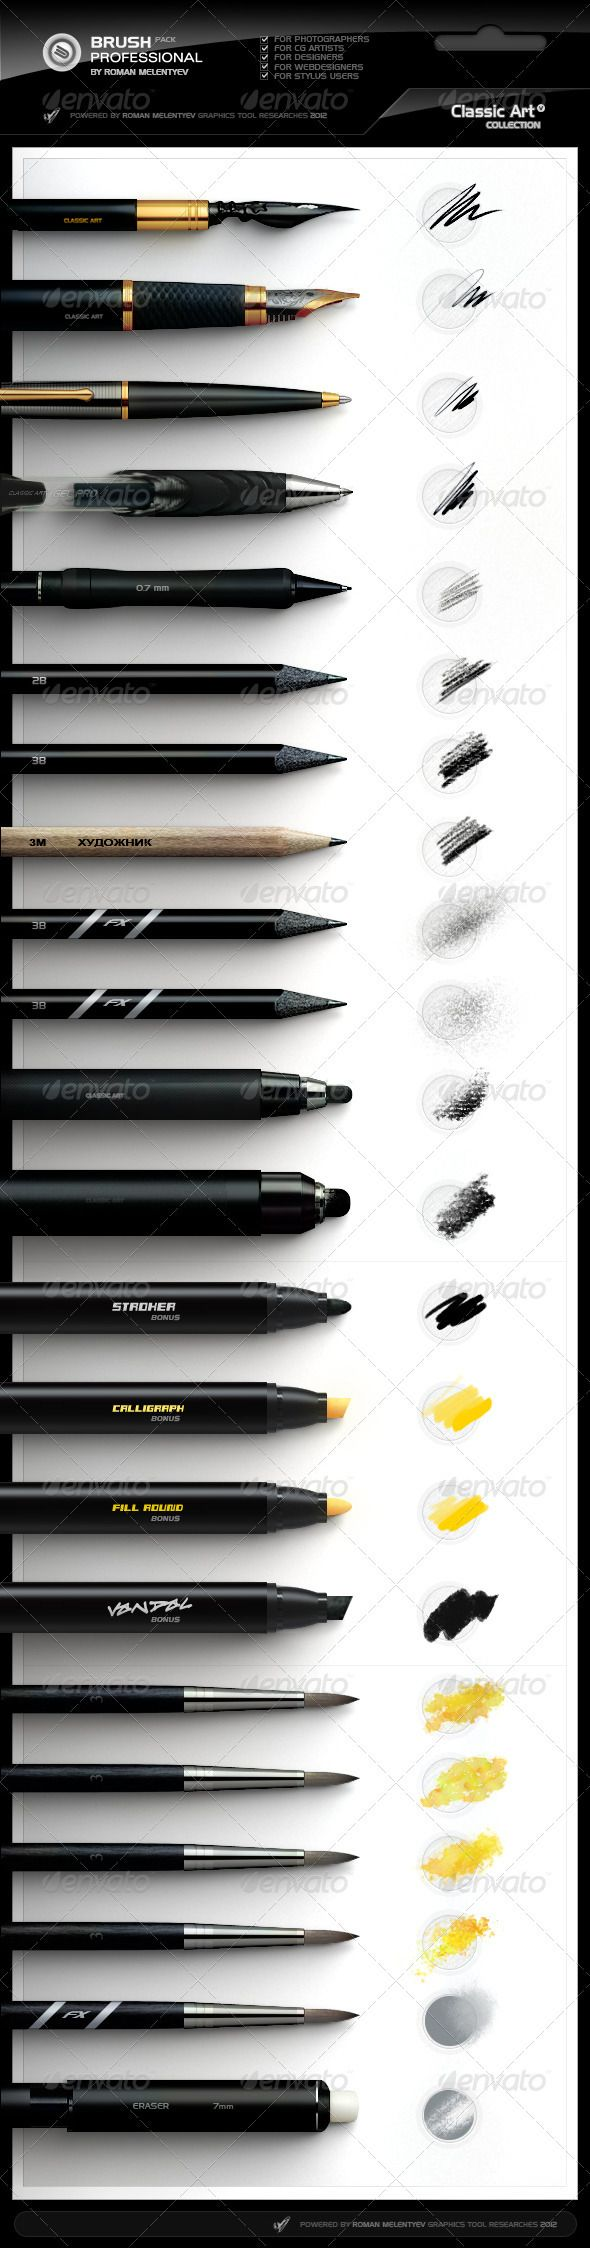 Photoshop Professional Brush Pack vol.4 - Classic by xgfxws.deviantart.com